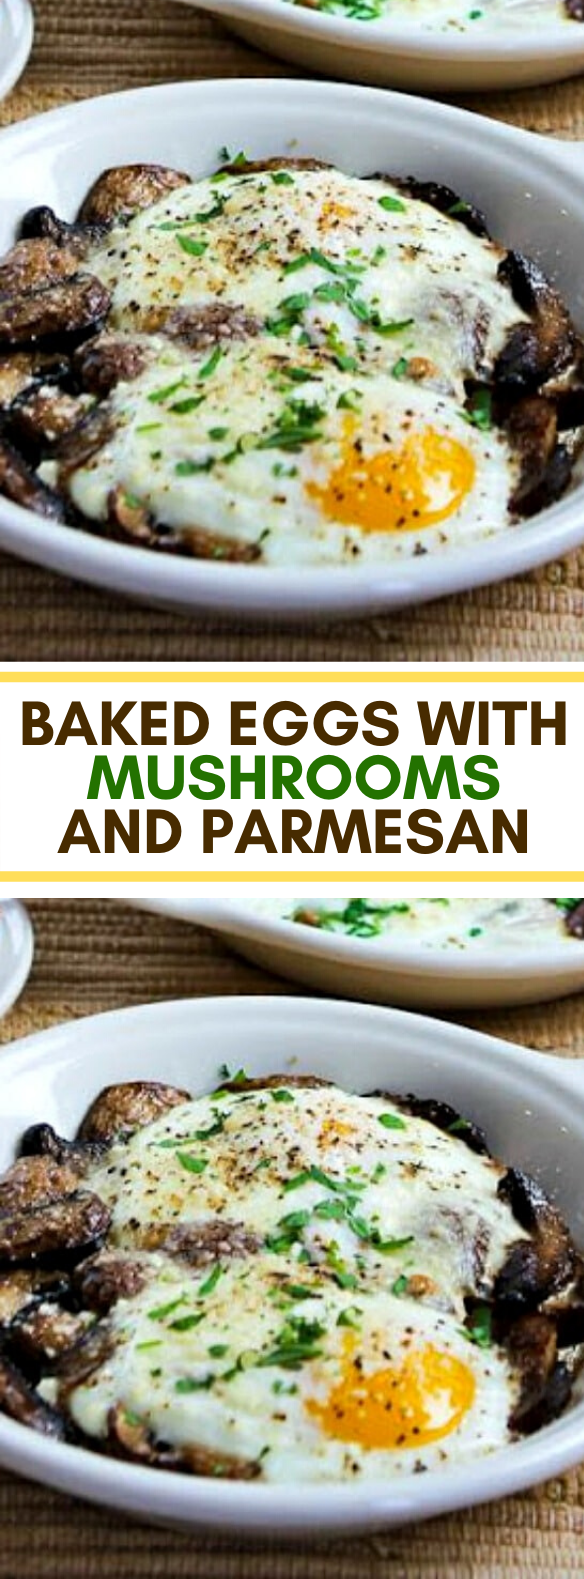 BAKED EGGS WITH MUSHROOMS AND PARMESAN #ketofriendly #lowcarb